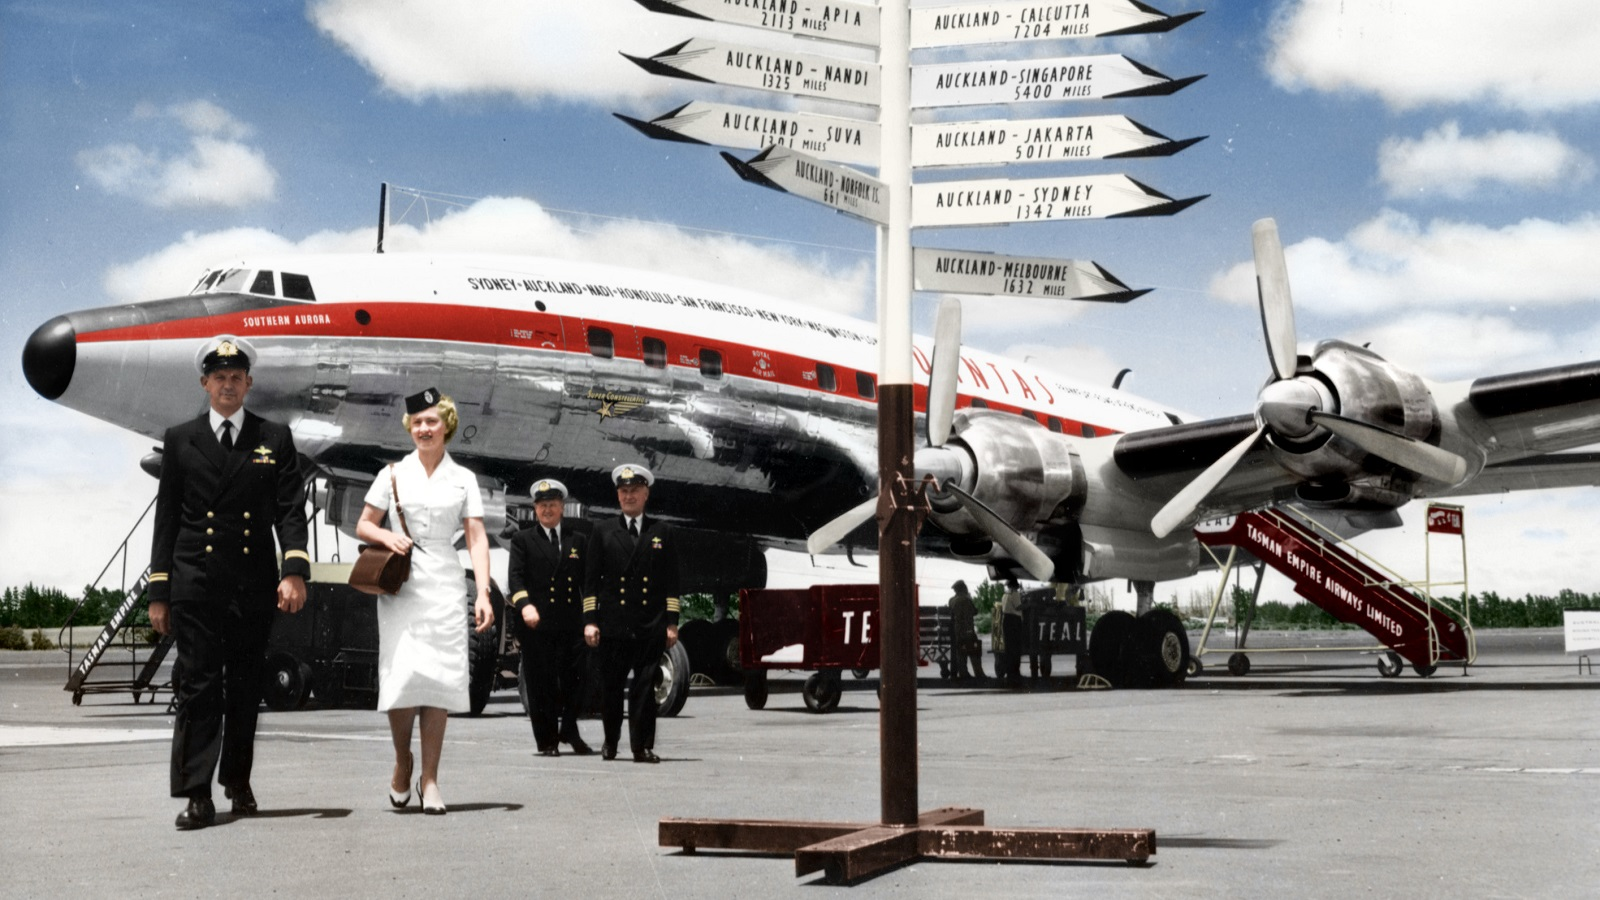 Qantas launched the worlds first round the world service